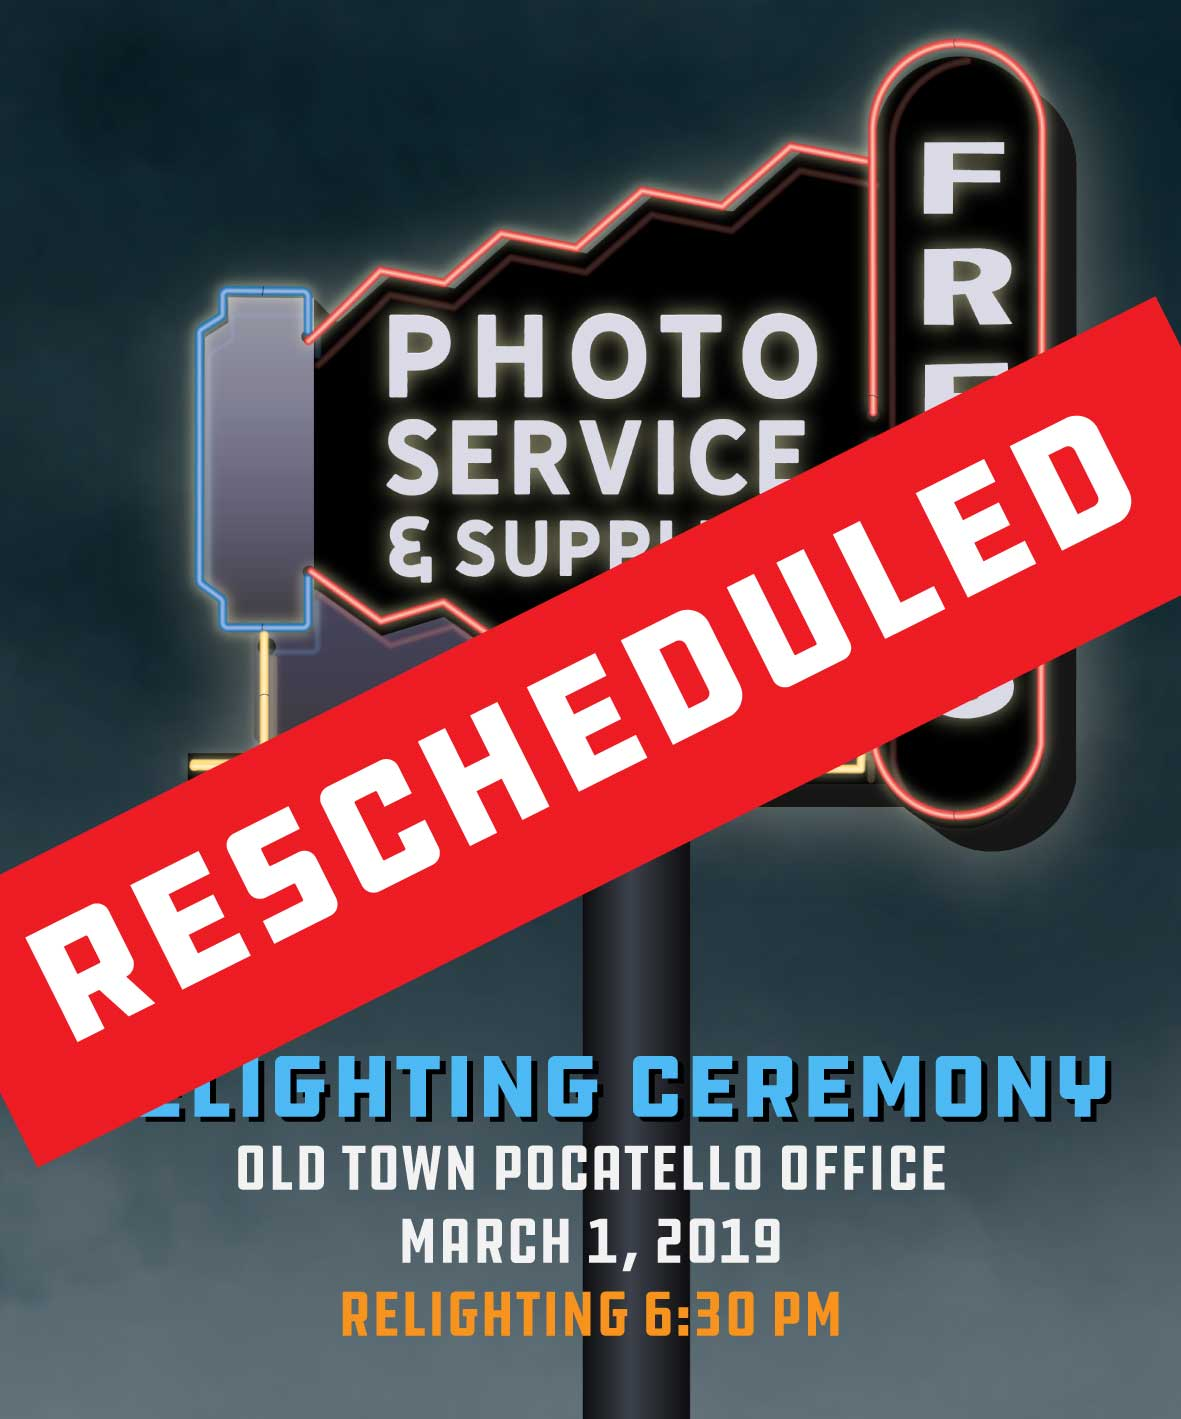 Fred's-Relighting-Sign-rescheduled.jpg